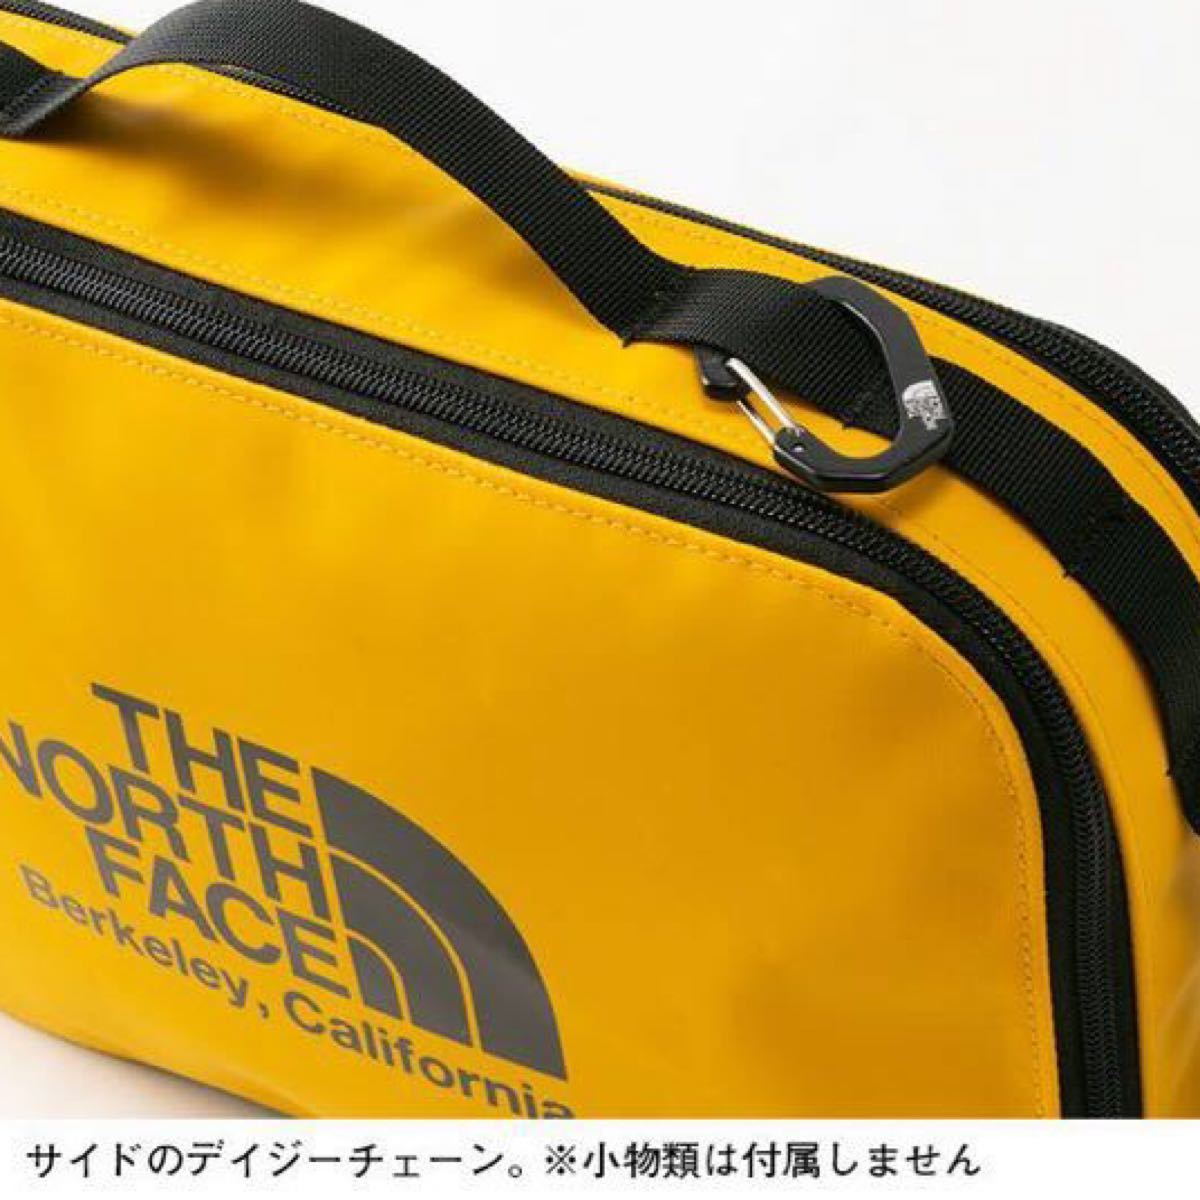 THE NORTH FACE(ザ・ノースフェイス) BC SQUARE CANISTER 2  8L マルチボックス